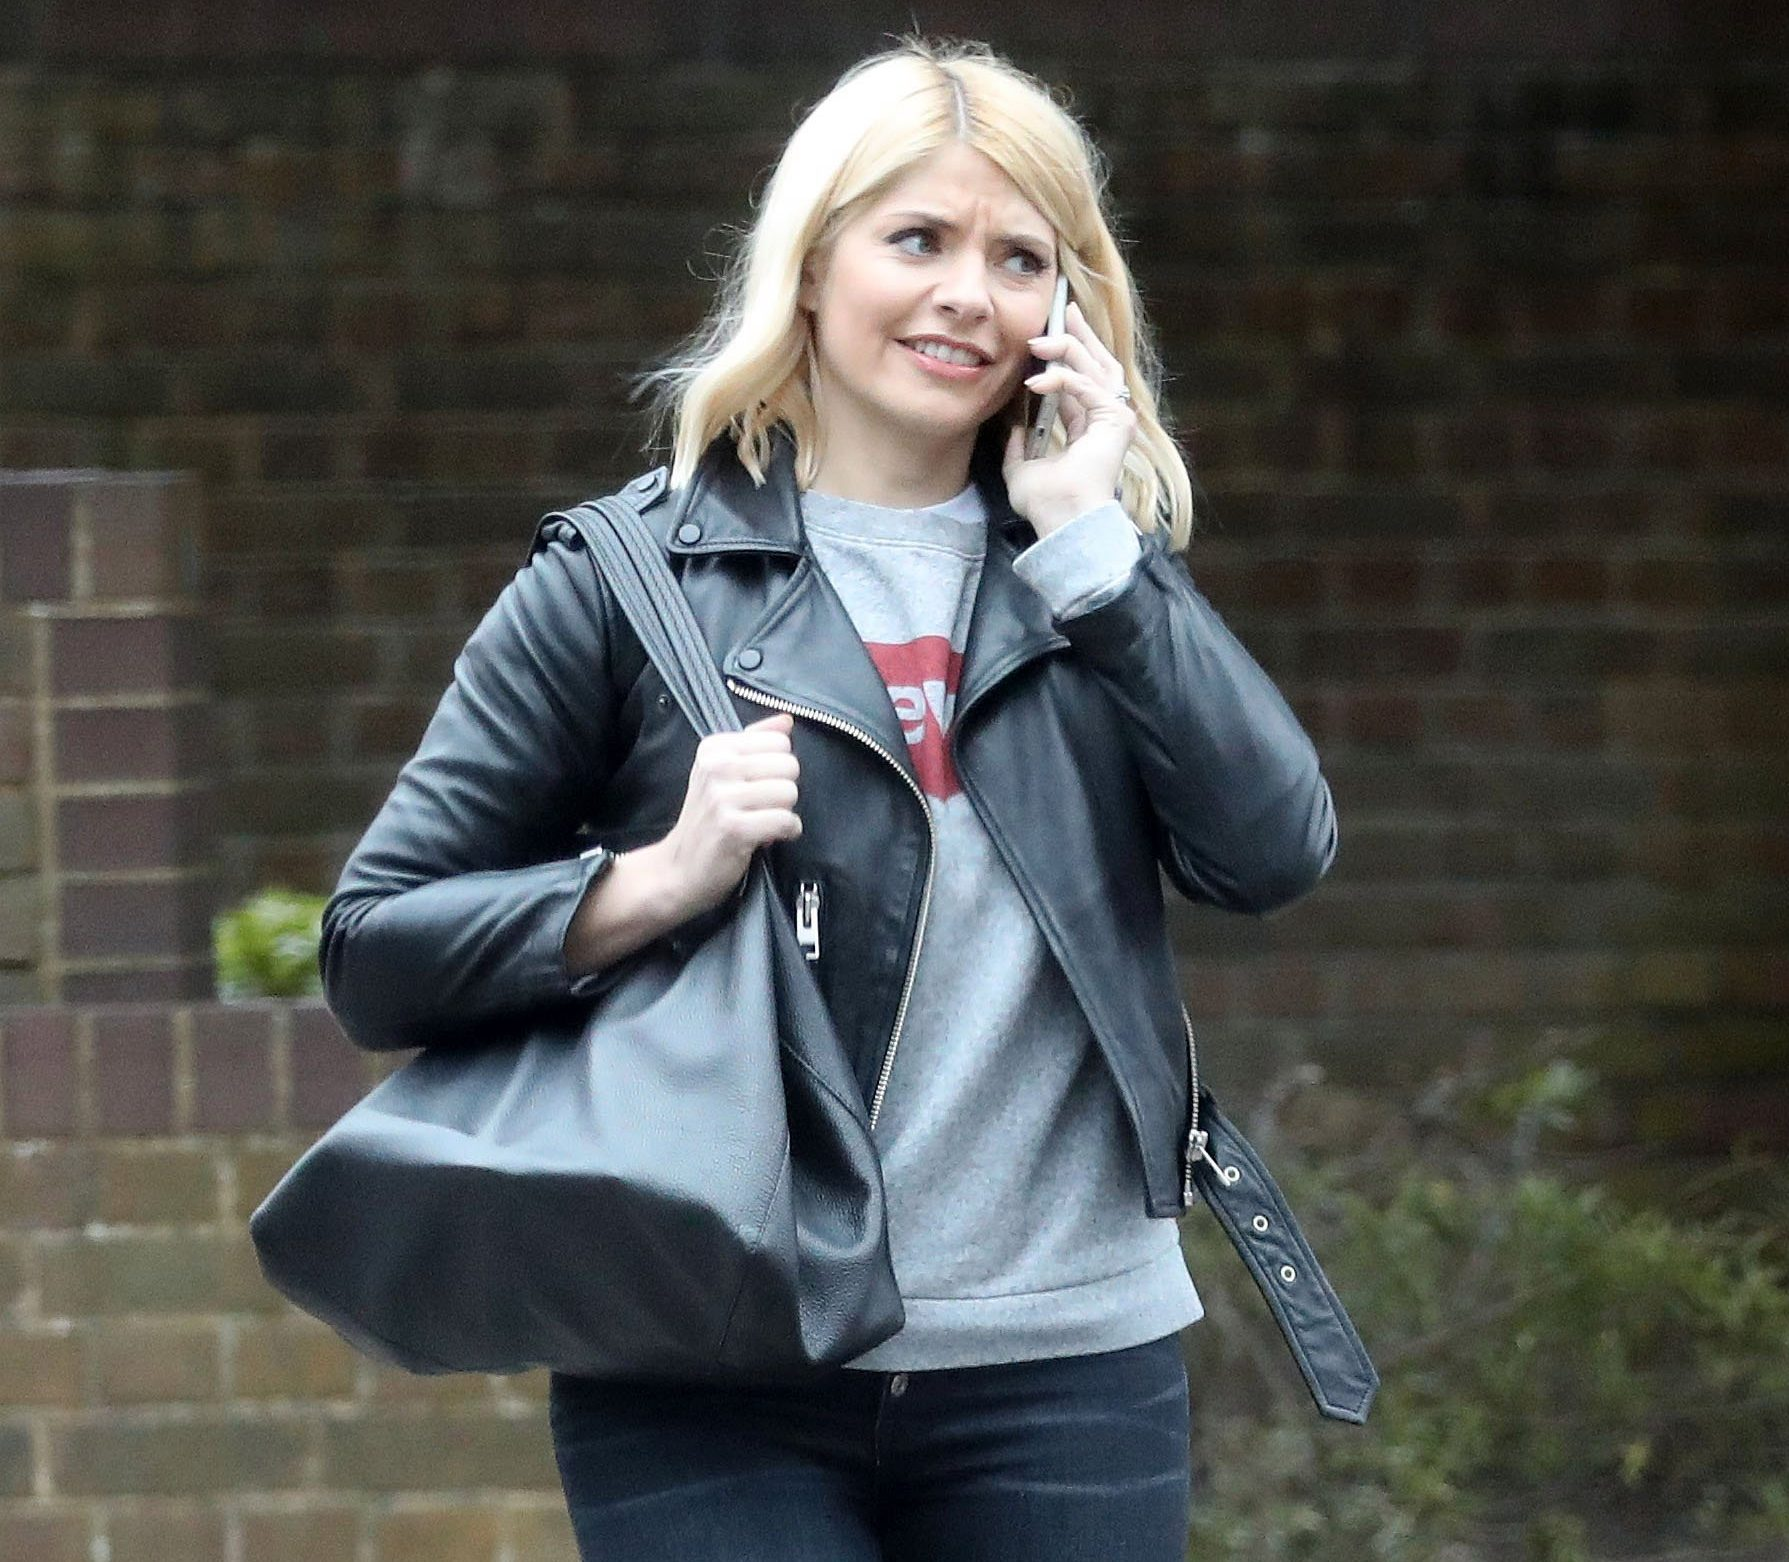 EXCLUSIVE: Holly Willoughby seen running errands in West London. The This Morning host makes her way across a zebra crossing , whilst a coach ironically named 'Impact' fails to give way to the chat show host. 20 Mar 2019 Pictured: Holly Willoughby. Photo credit: MEGA TheMegaAgency.com +1 888 505 6342 (Mega Agency TagID: MEGA385342_010.jpg) [Photo via Mega Agency]